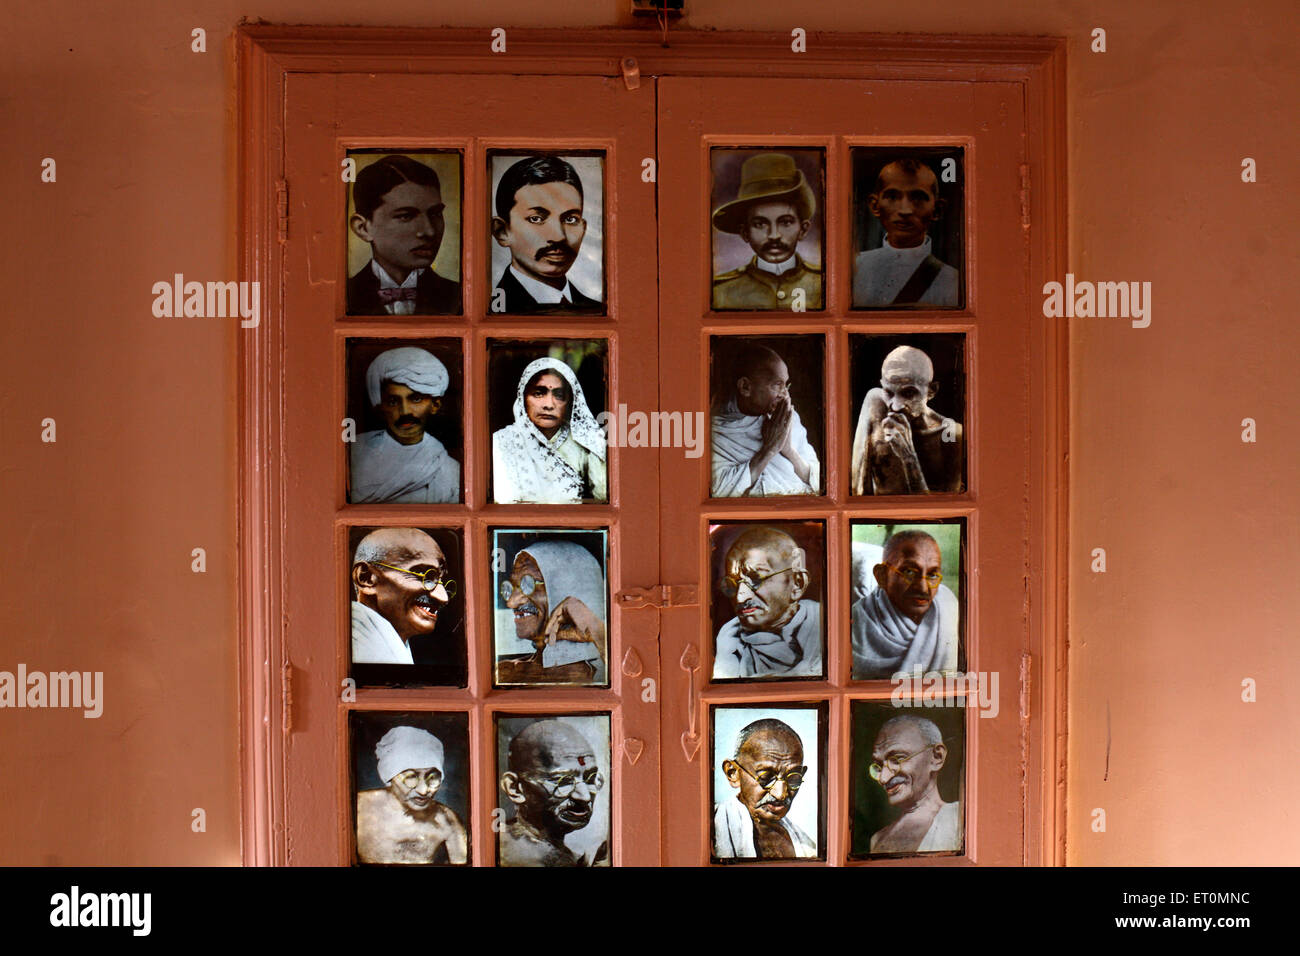 Photographs of Mahatma Gandhi with wife Kasturba Gandhi at Satyagraha Ashram founded in 25 May 1915 at Kochrab - Stock Image